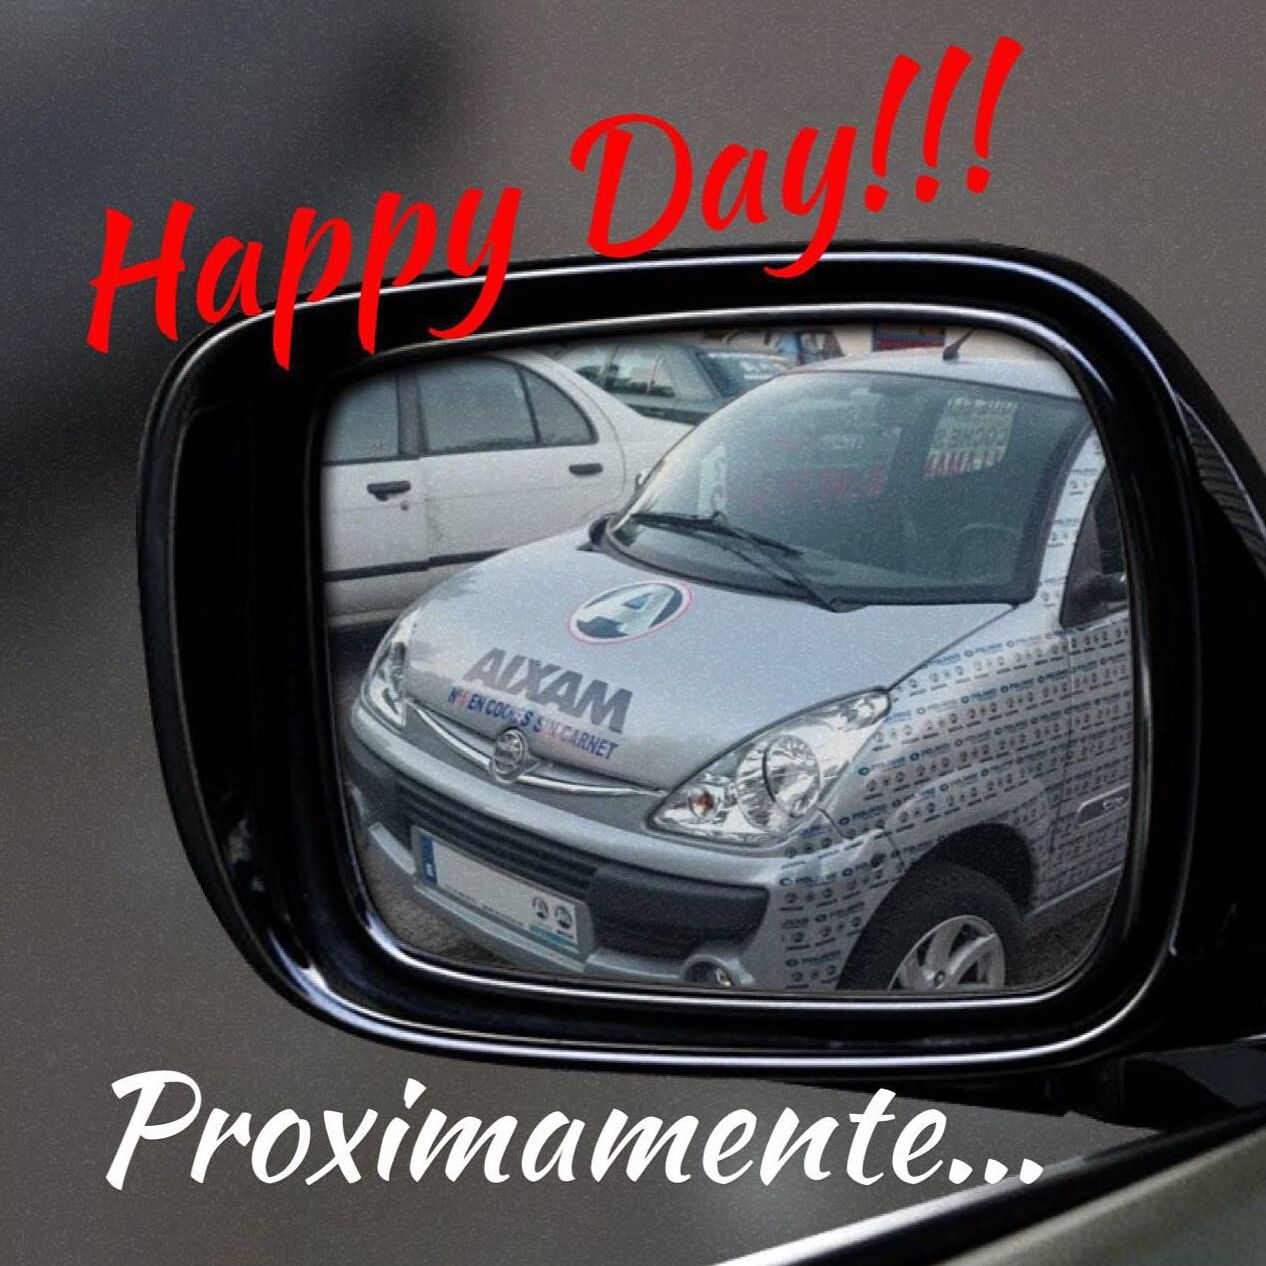 Happy Day muy pronto en Gesercar!!!